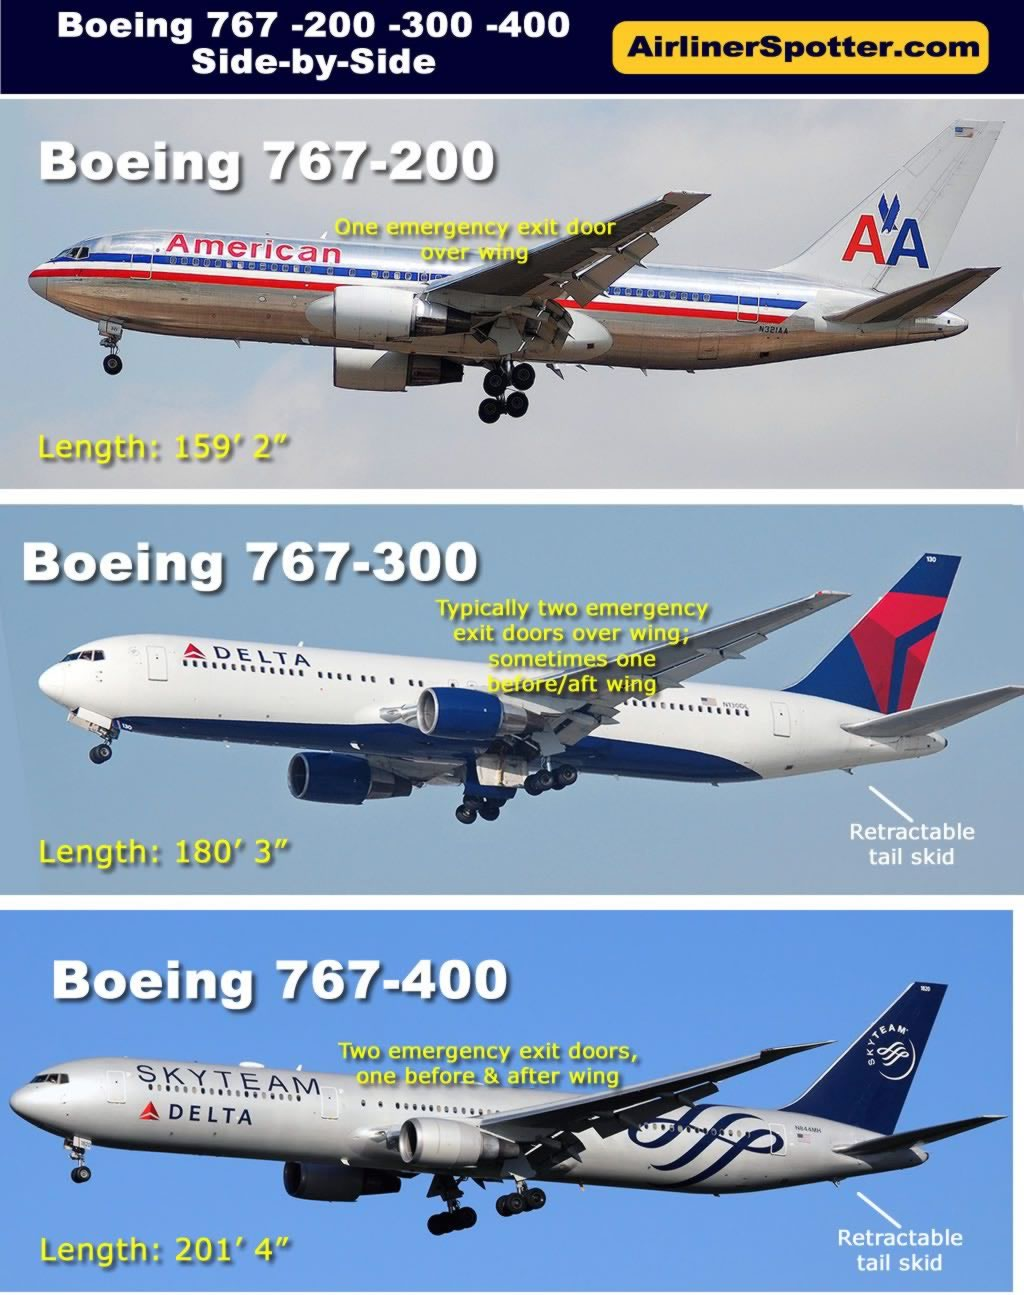 Boeing Jet Airliner Spotting Guide, How to Tell Boeing 7x7